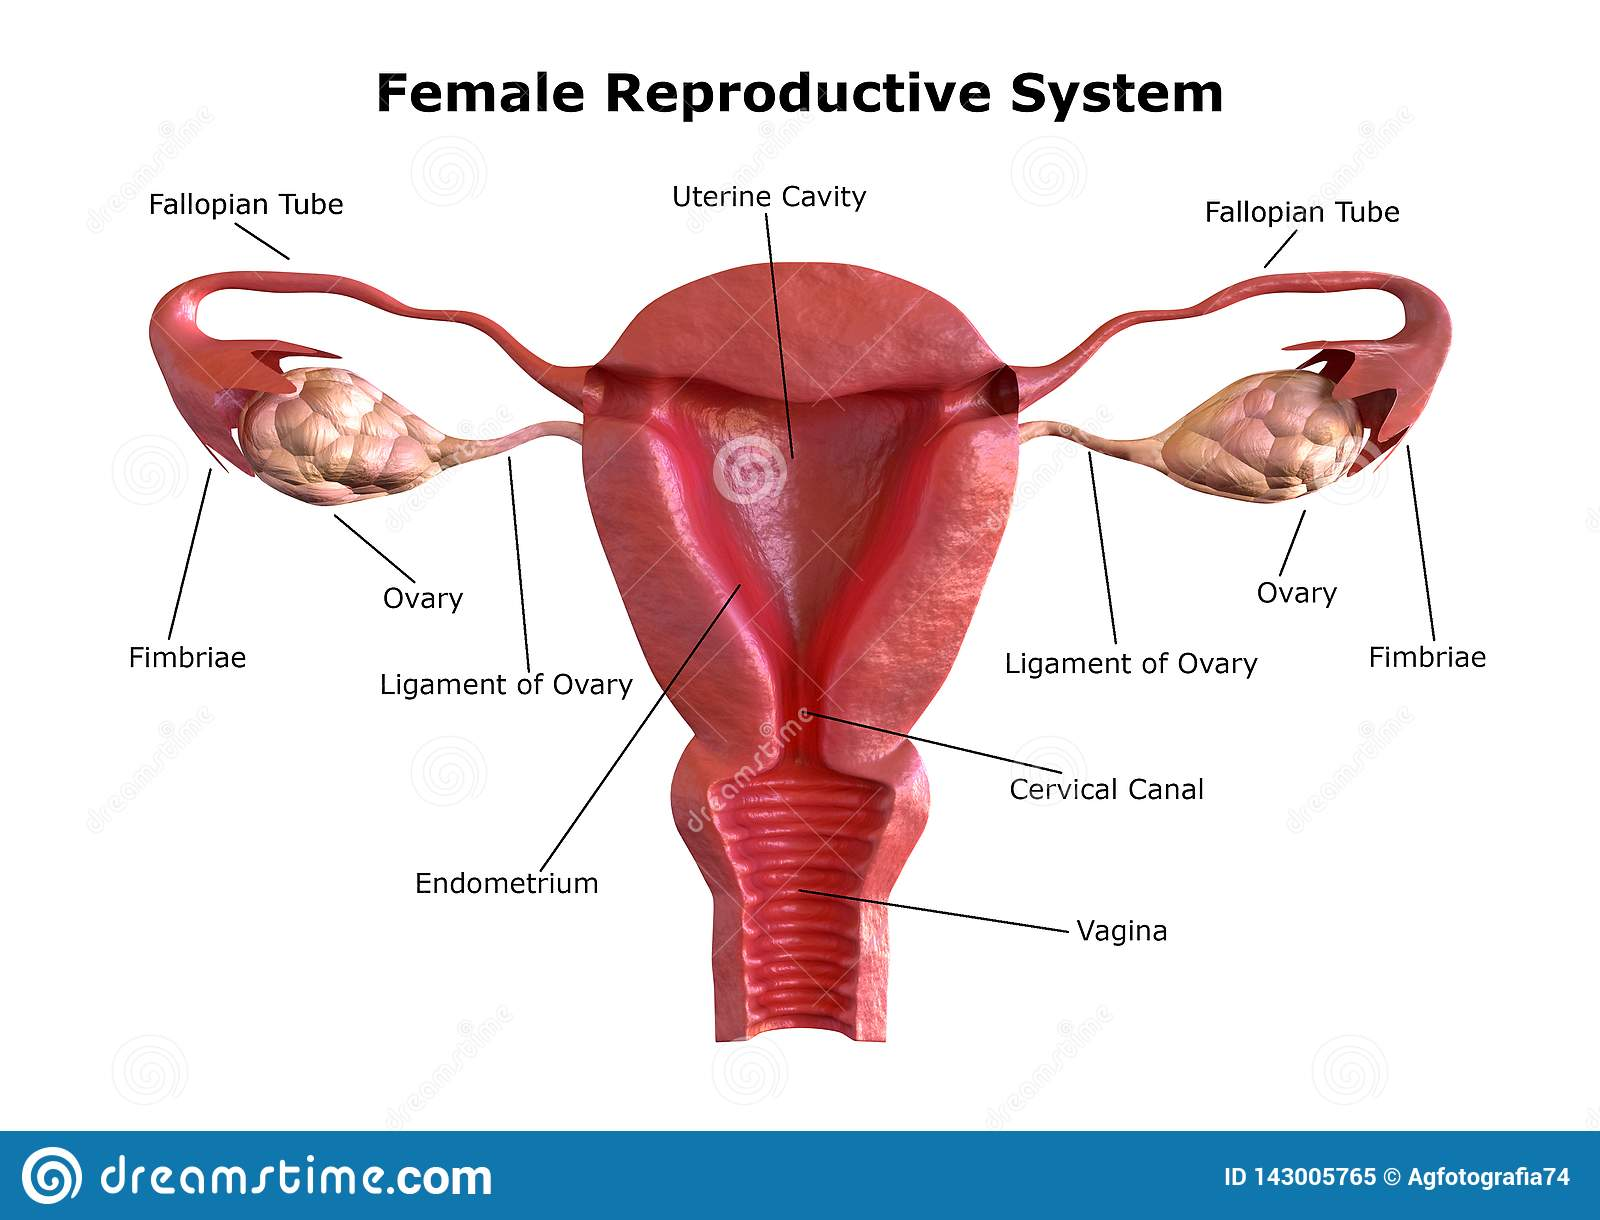 Female Reproductive System. Internal View Of The With ... on pituitary system diagram, immune system diagram, fetus diagram, skin diagram, the vascular system diagram, immunologic system diagram, cardiac system diagram, endocrine system diagram, respiratory system diagram, excretory system diagram, cardiovascular system diagram, bladder system diagram, digestive tract diagram, musculoskeletal system diagram, integumentary system diagram, nervous system diagram, uterus system diagram, sensory system diagram, hepatobiliary system diagram, cns system diagram,